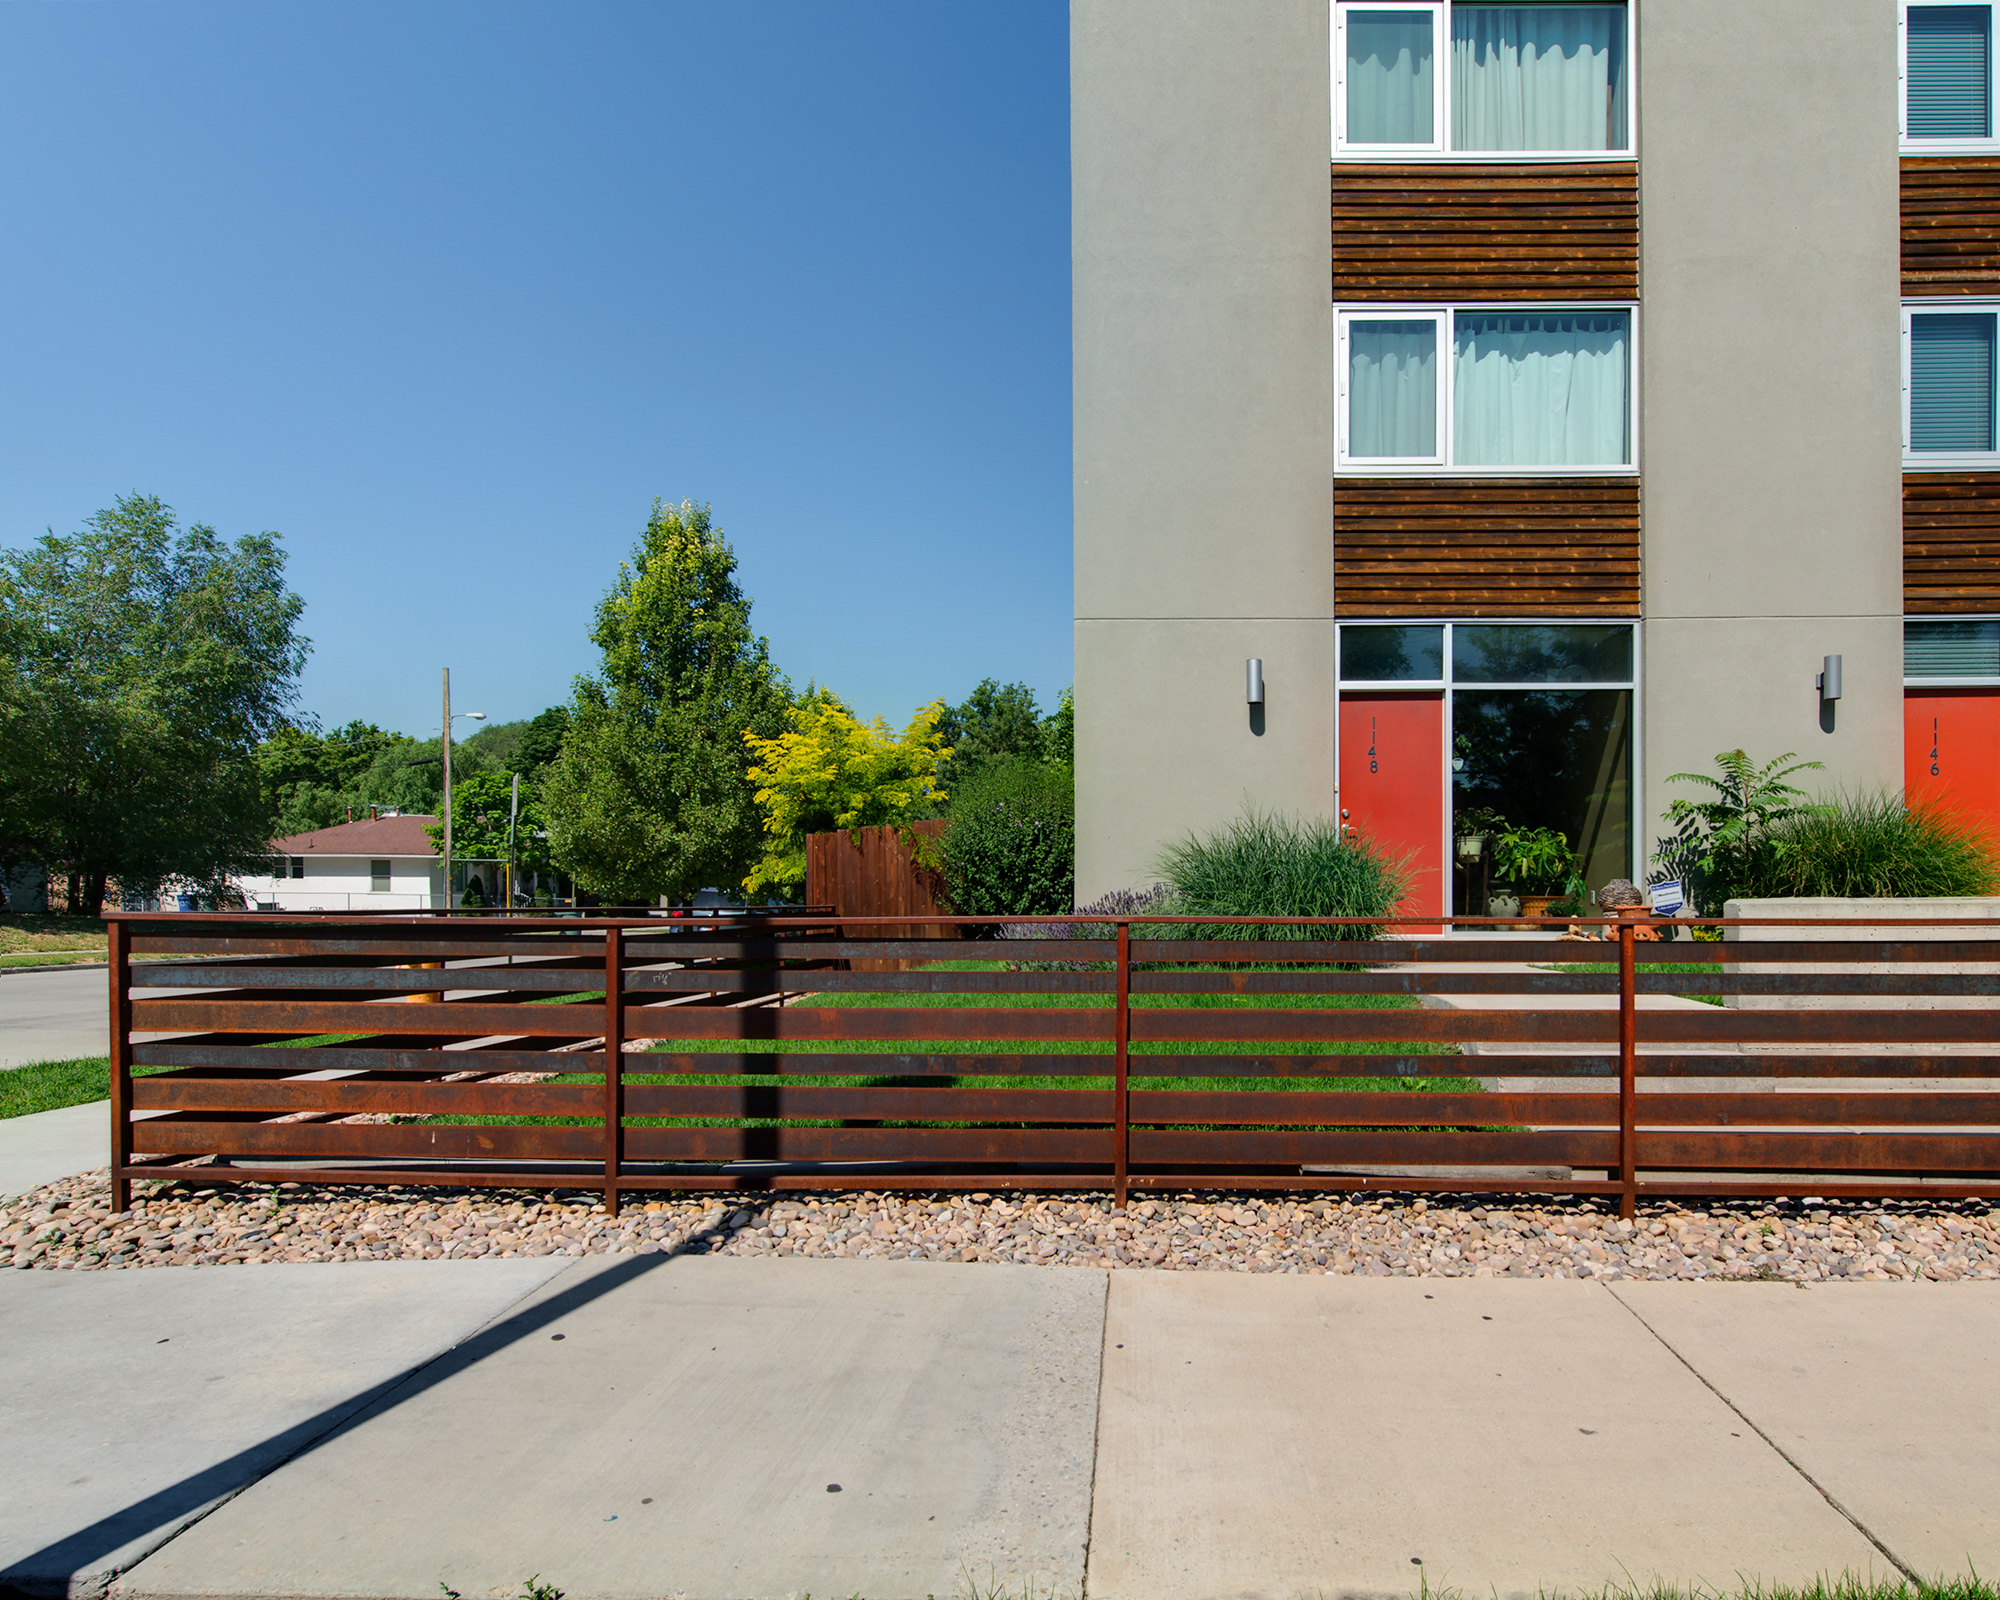 20' METAL FENCE SET OF 14 UNITS